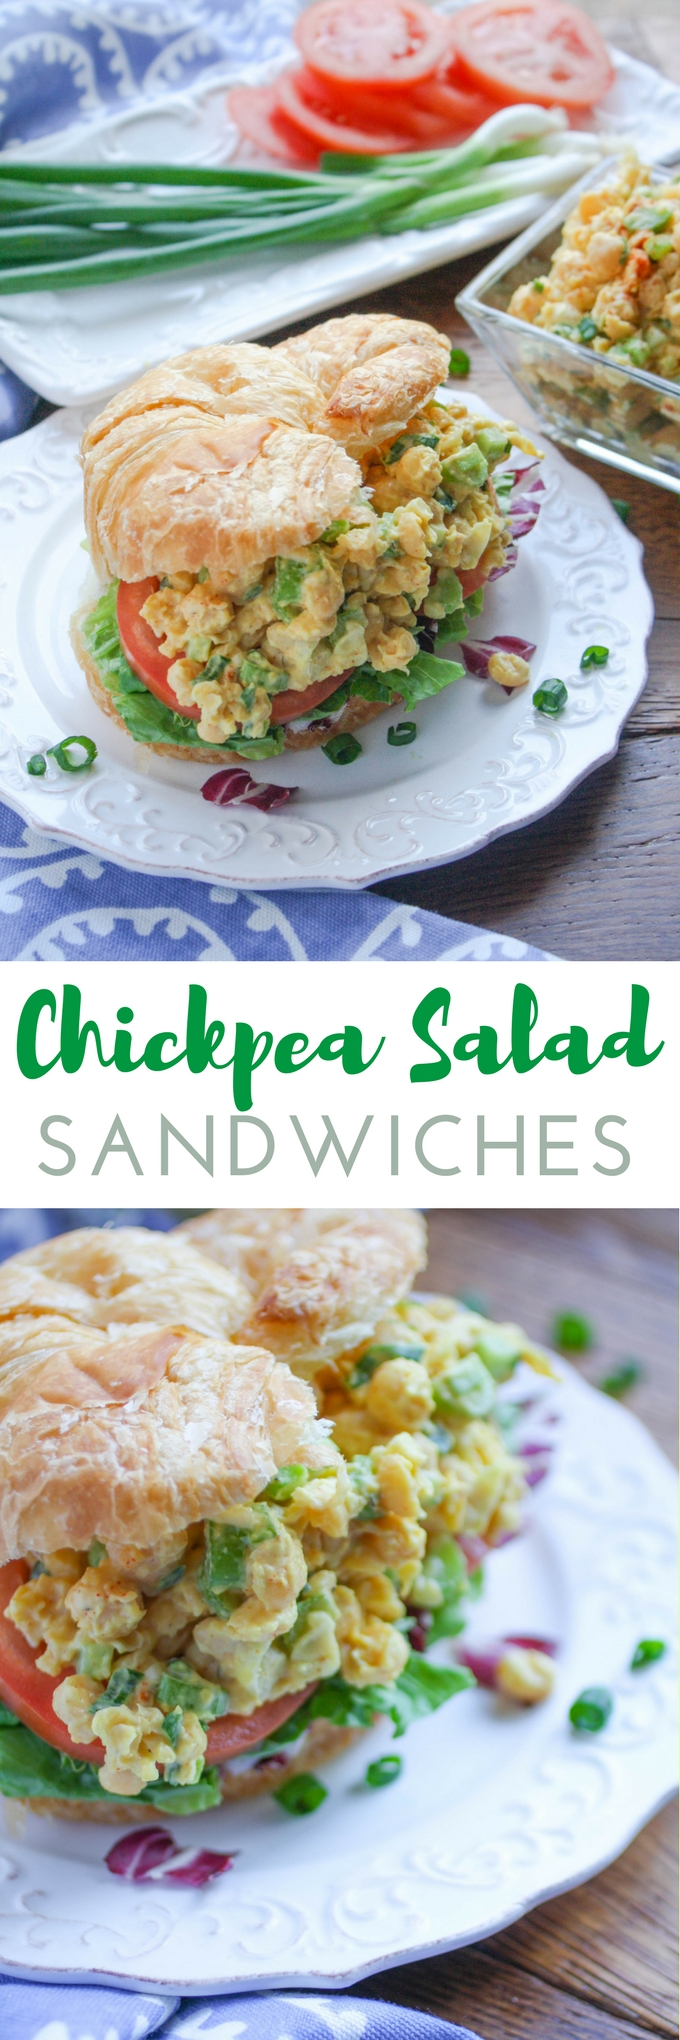 Chickpea Salad Sandwiches are a fabulous vegetarian sandwich great for any meal. You'll love these sandwiches for their big flavor!